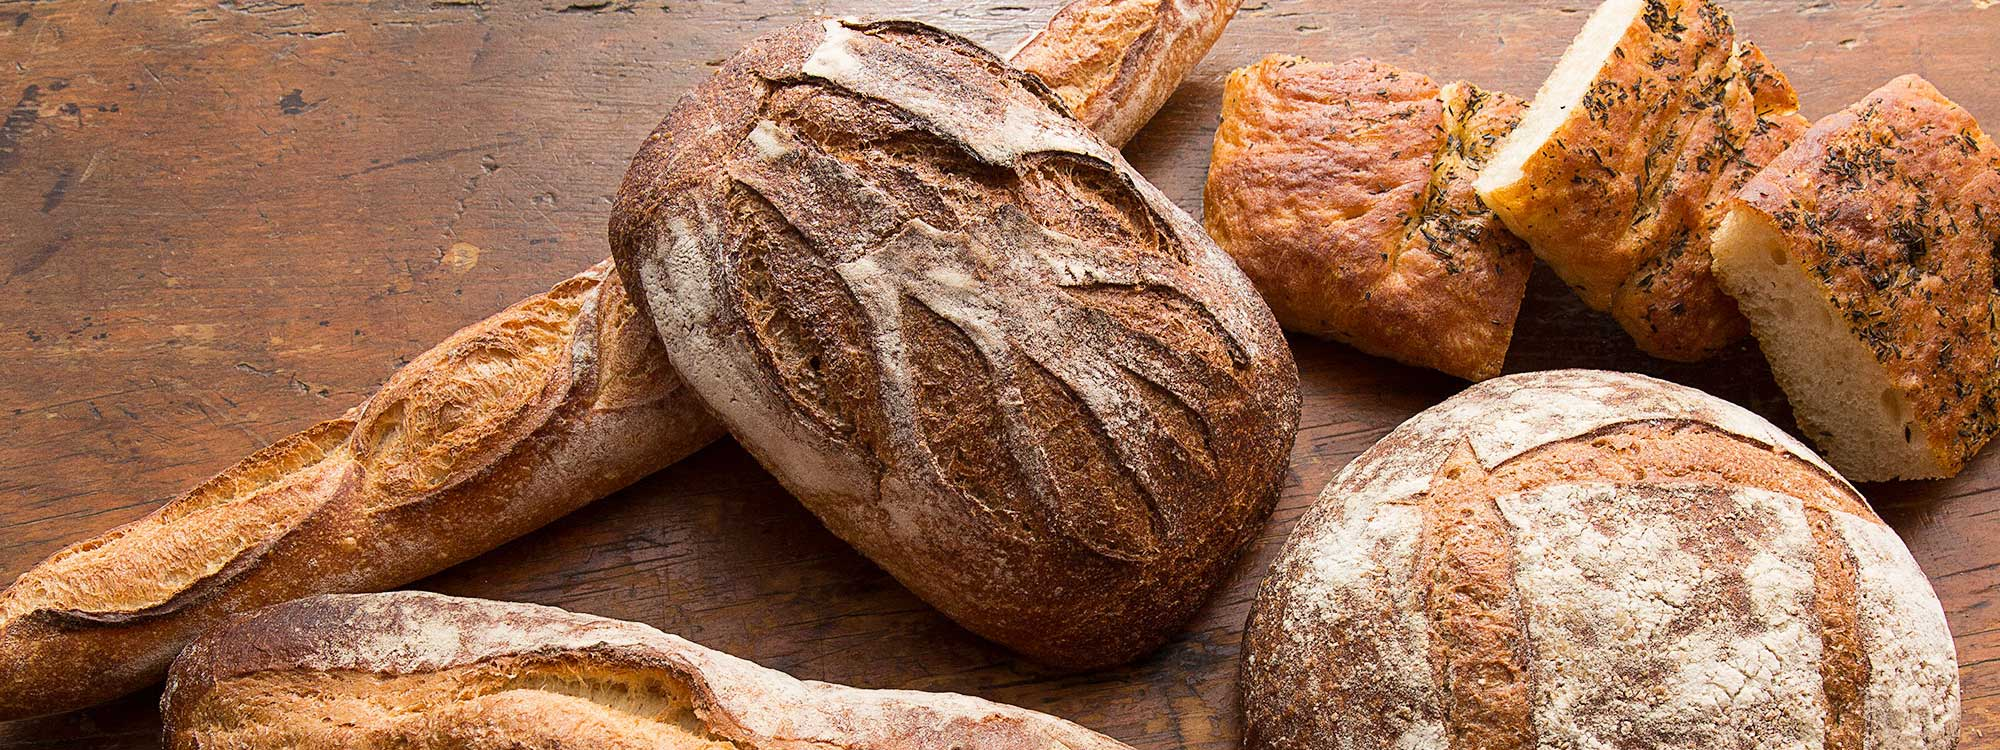 SAVEUR Gift Guides: A Professional Baker's Tools for Making Perfect Bread